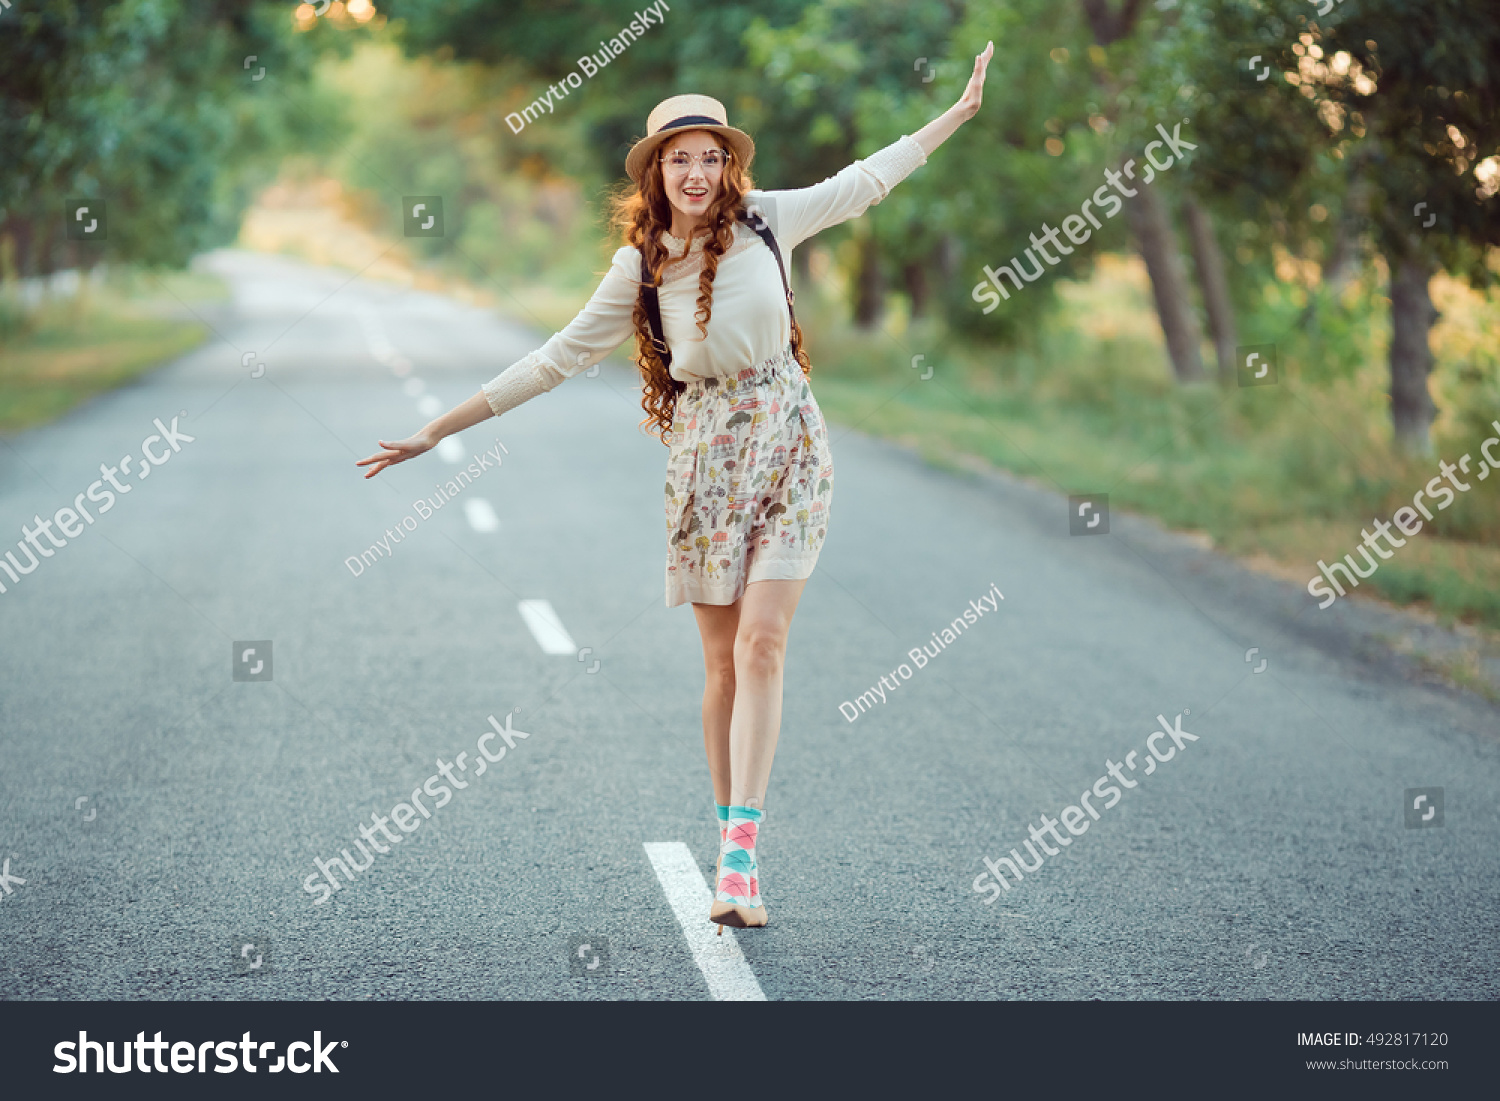 Young girl traveler enjoy the travel Happy smiling woman walking by the road Adventure is coming concept